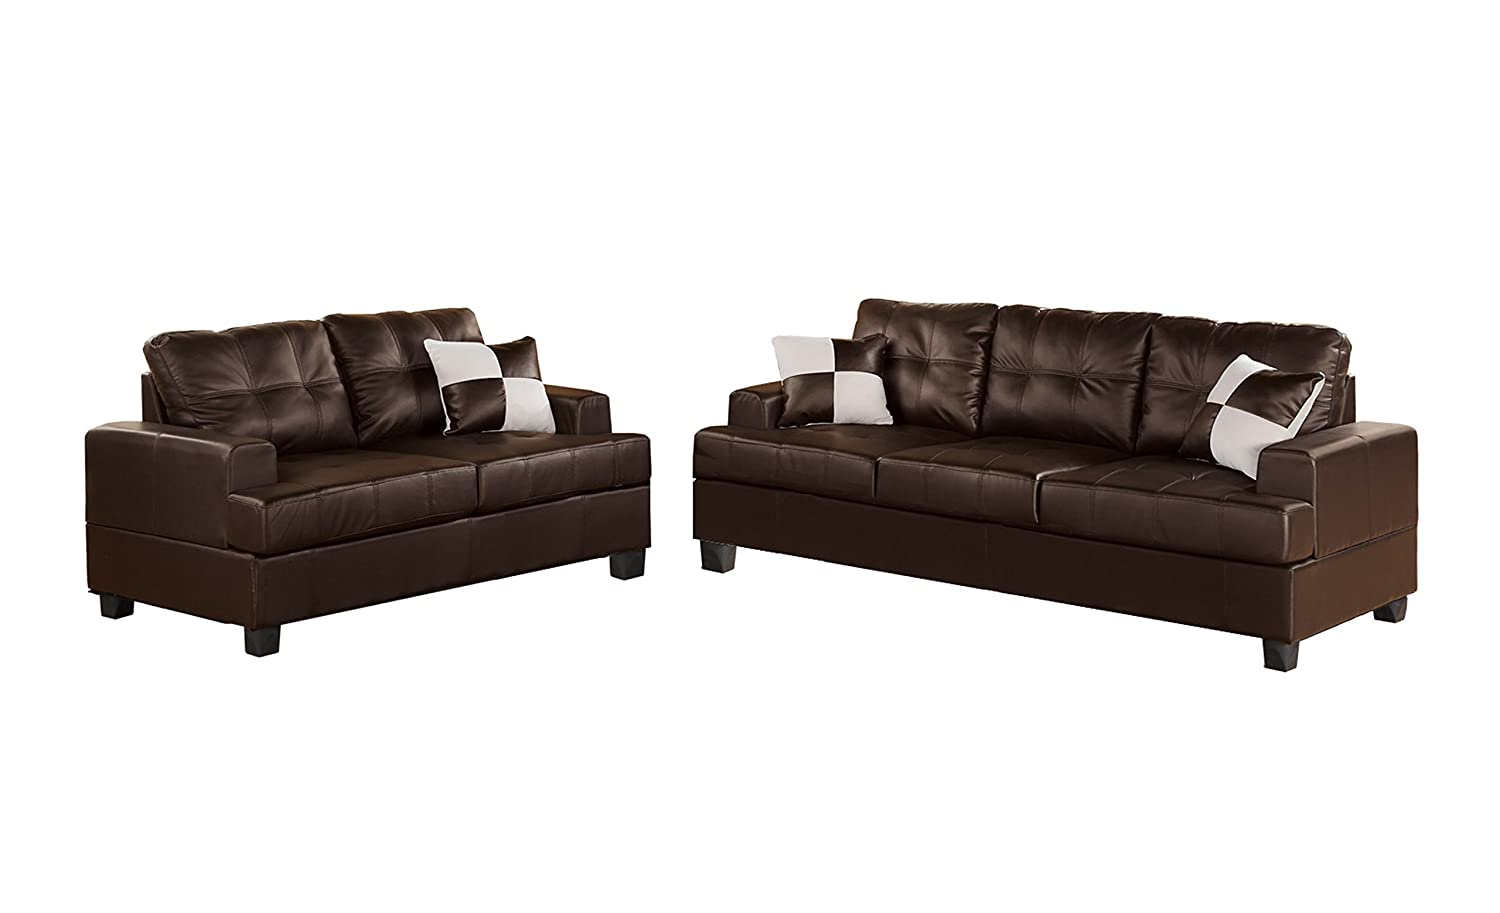 Leather 2 Piece Sofa Loveseat Set Accent Pillows Living